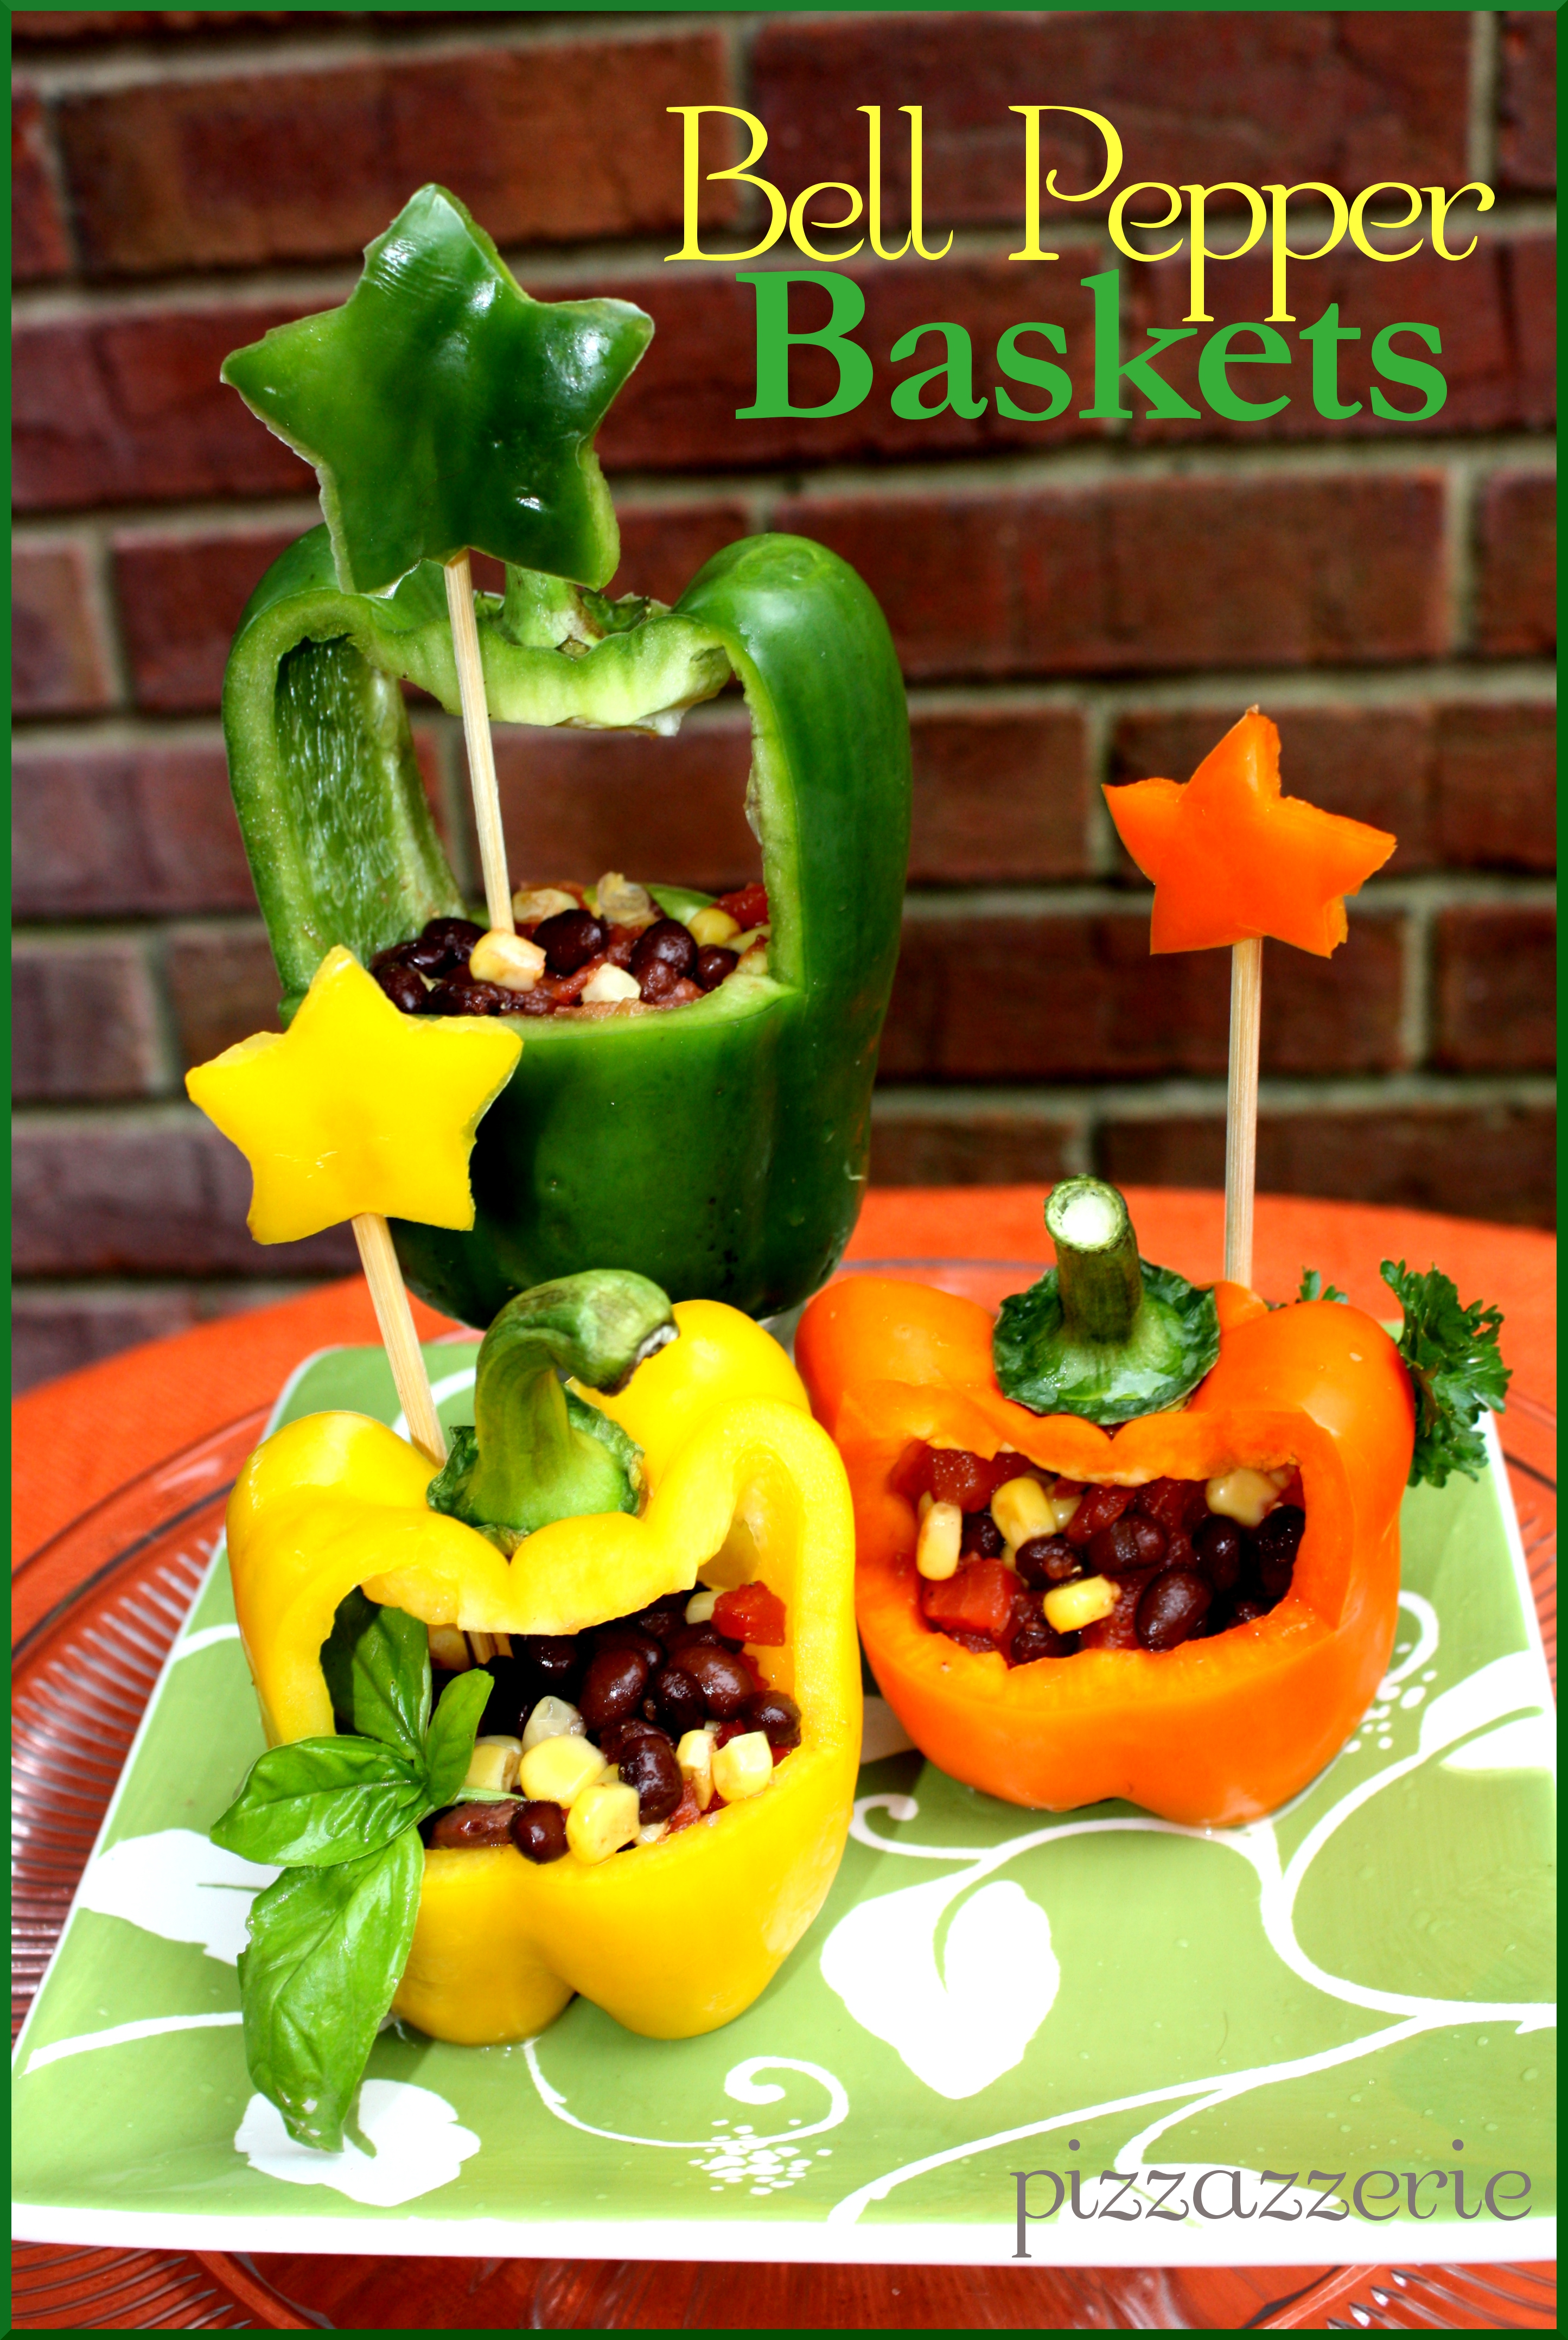 Bell Pepper Baskets Pizzazzerie